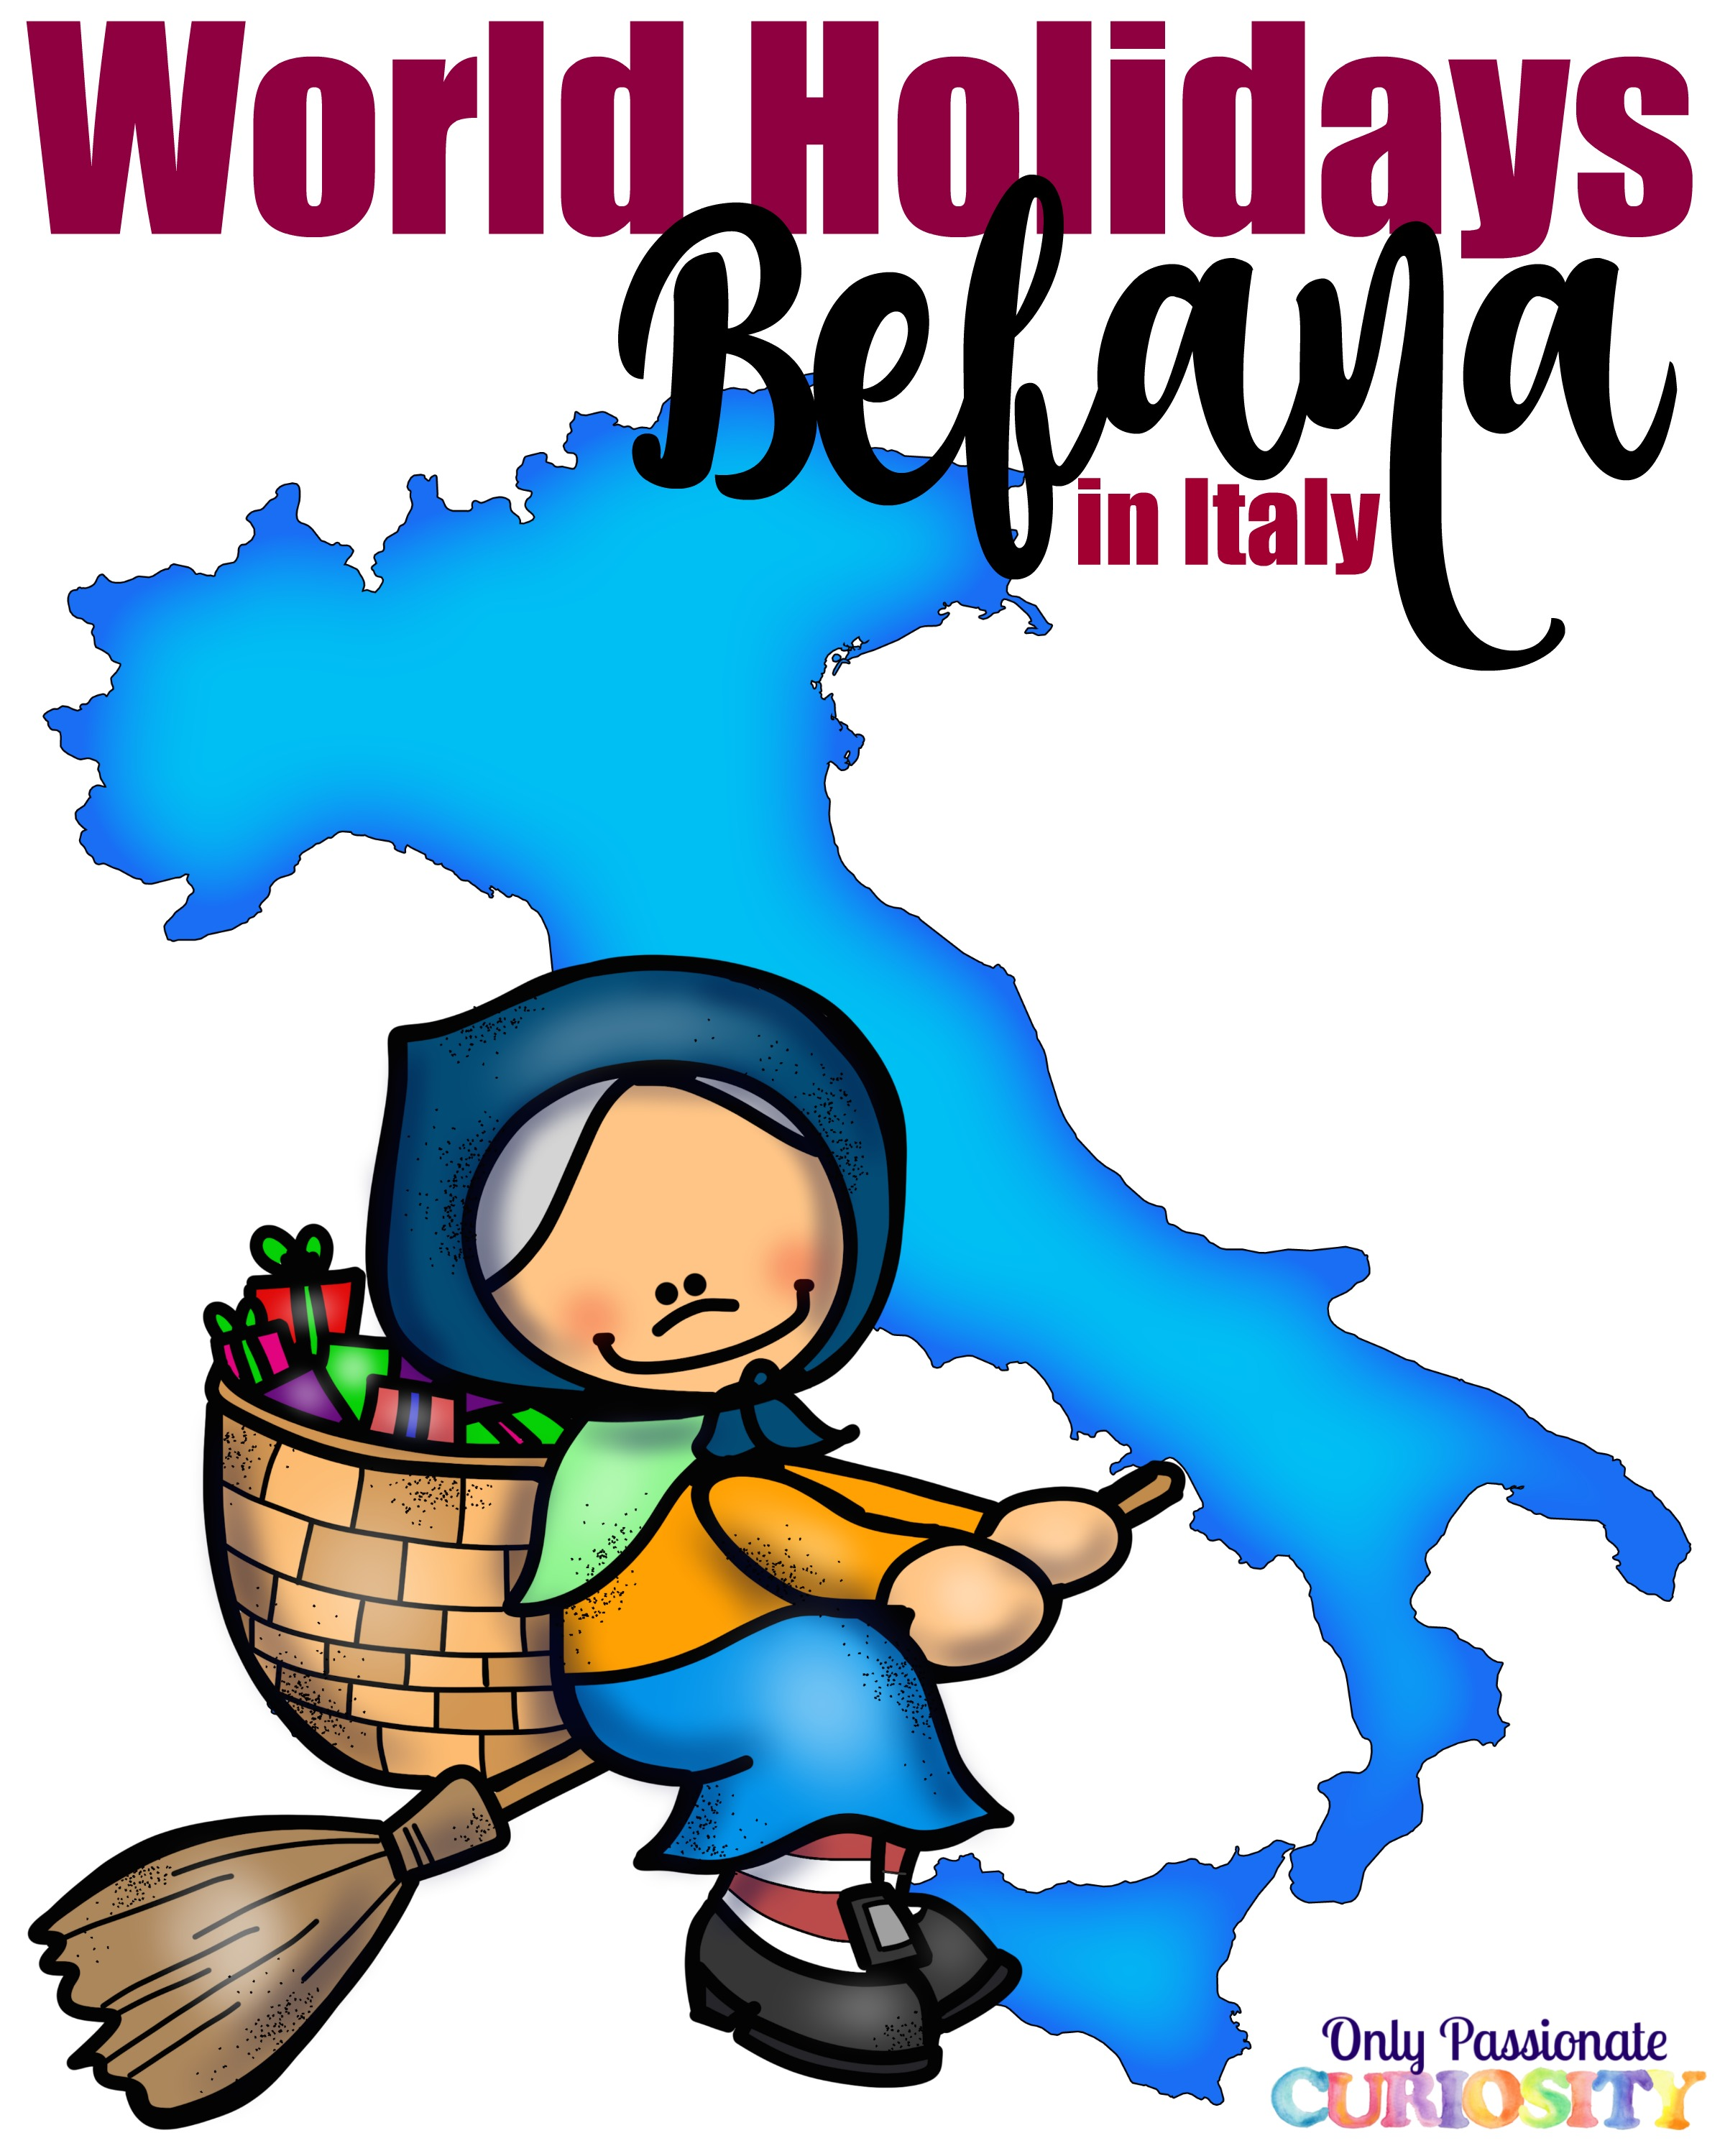 World Holiday Traditions La Befana Italy Only Passionate Curiosity Poems Printables